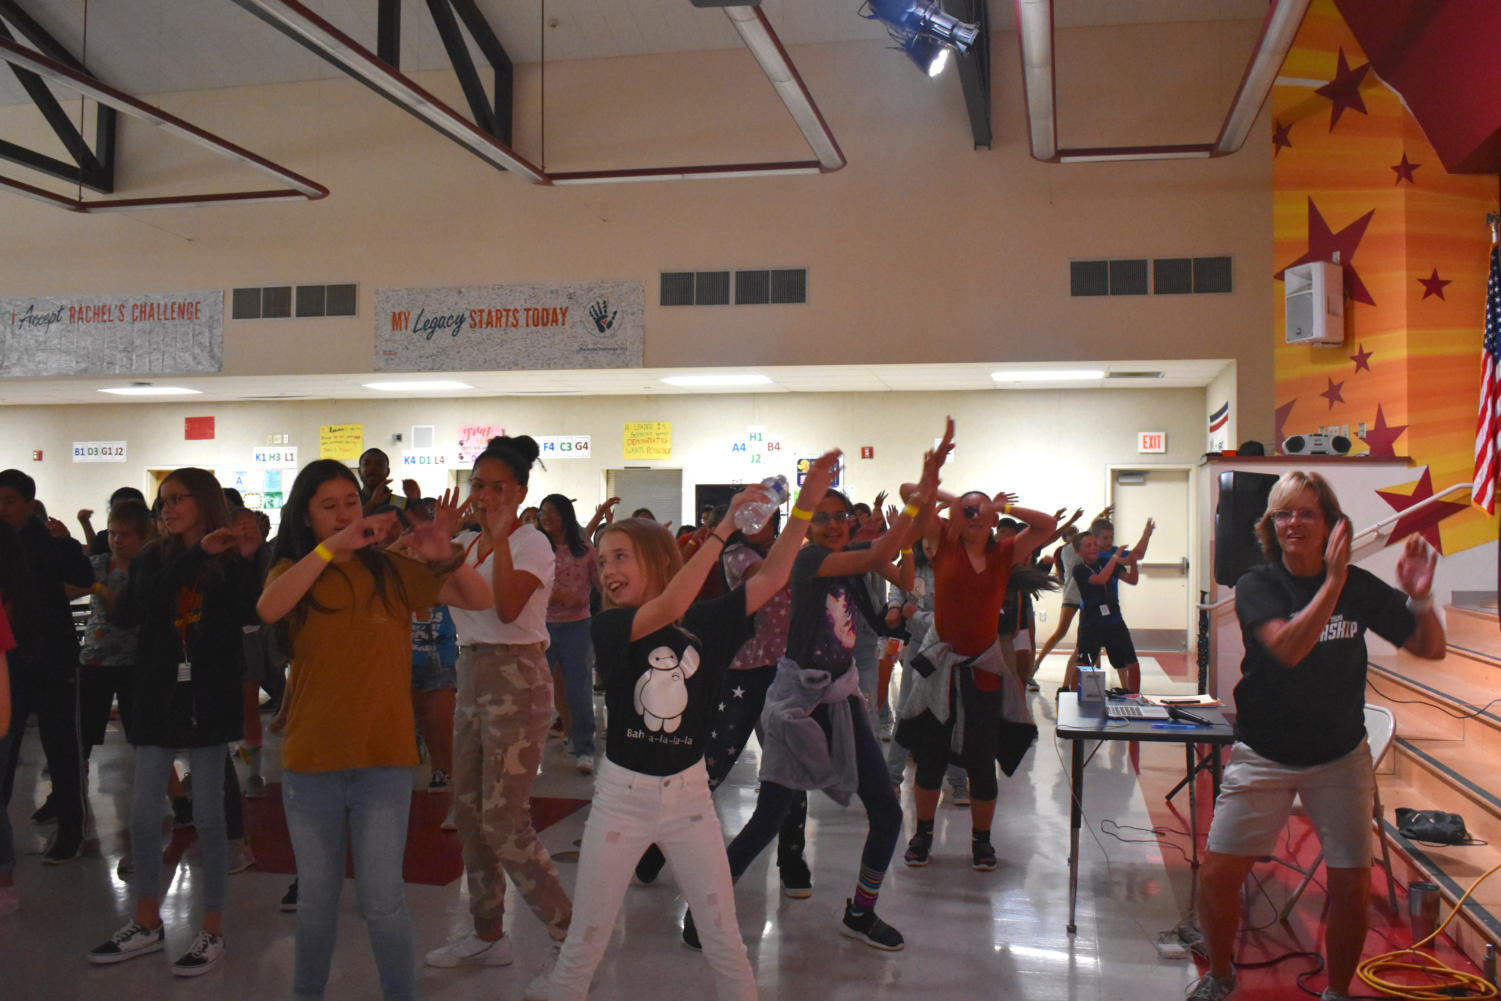 Students had so much dancing fun with their friends at the atten-dance.